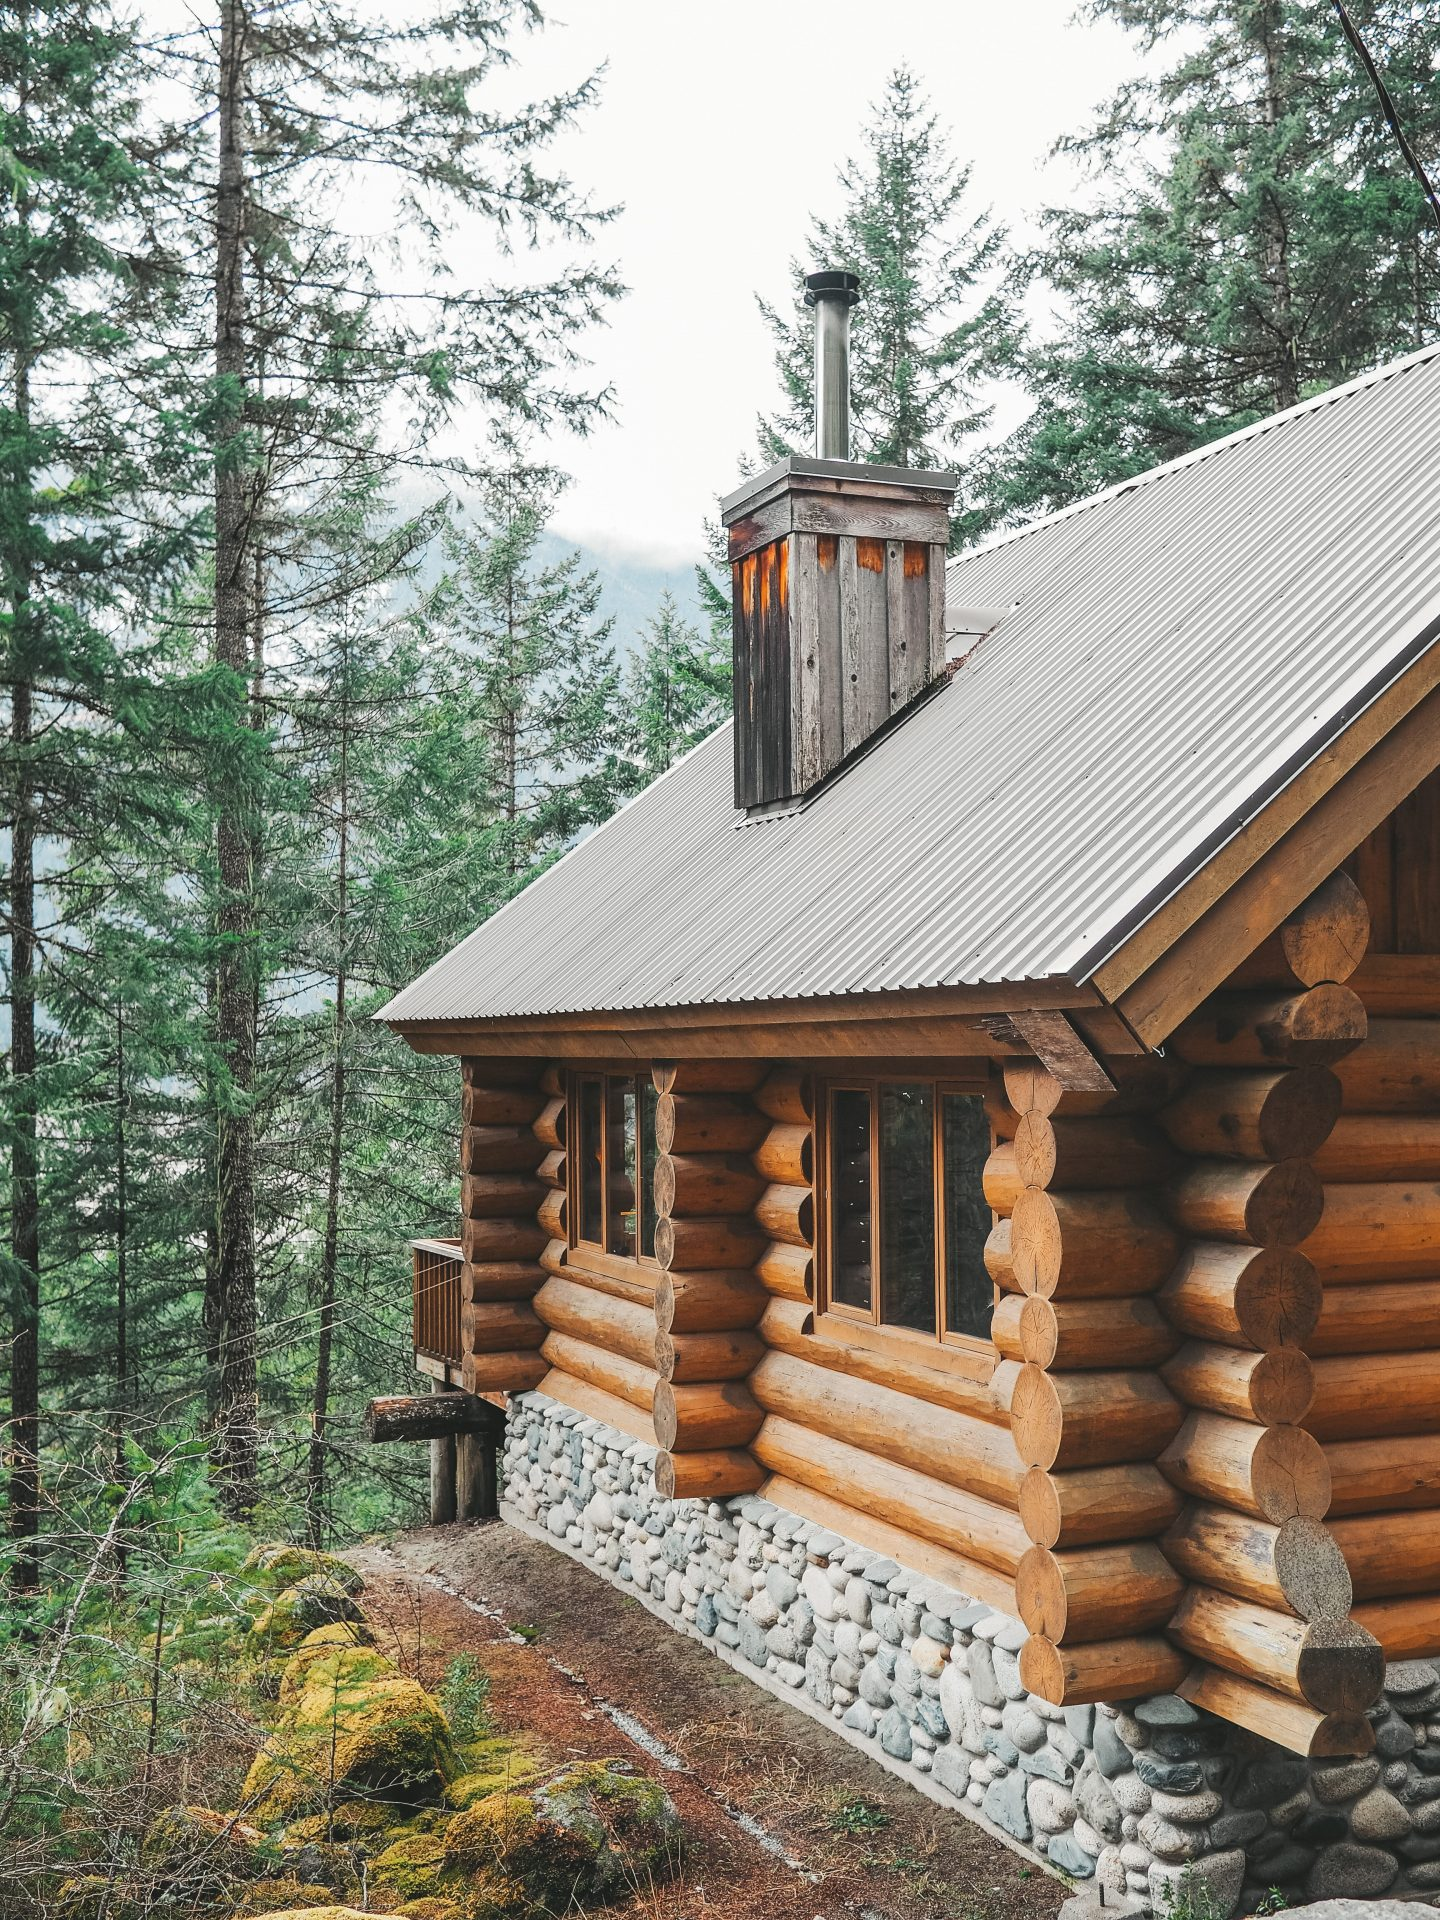 5 Benefits To Owning A Log Cabin